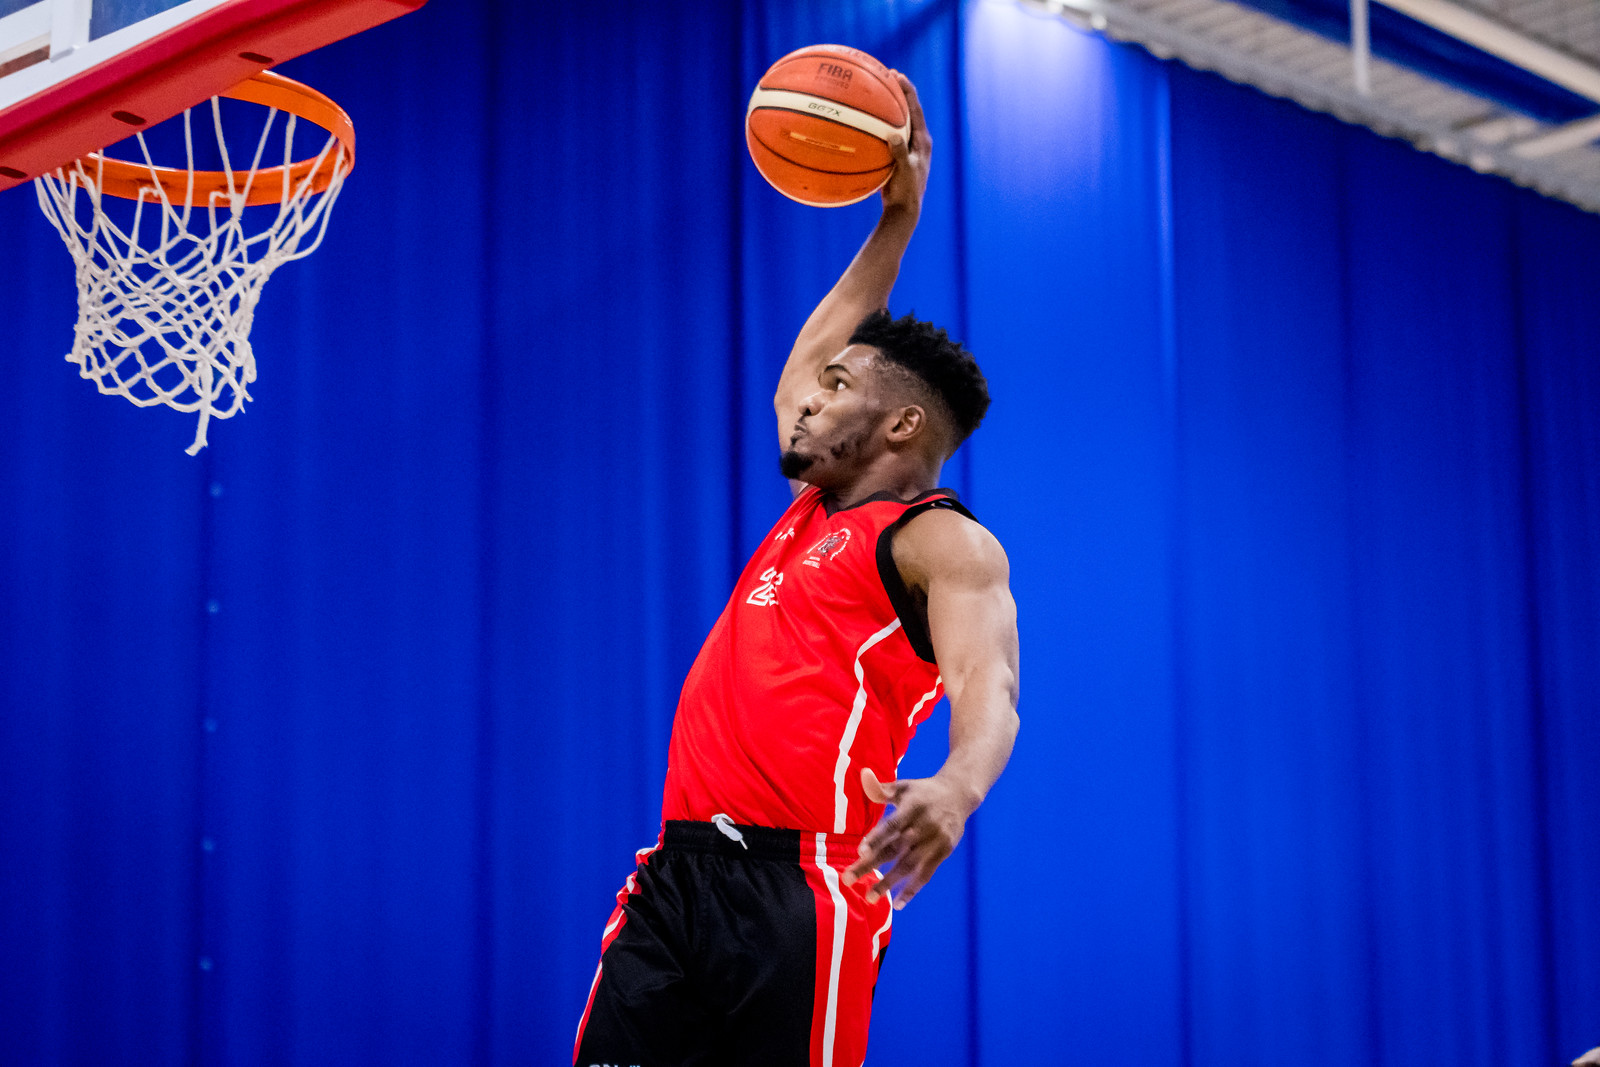 UWE Jets Basketball vs University of Bournemouth Basketball - 27/11/2019